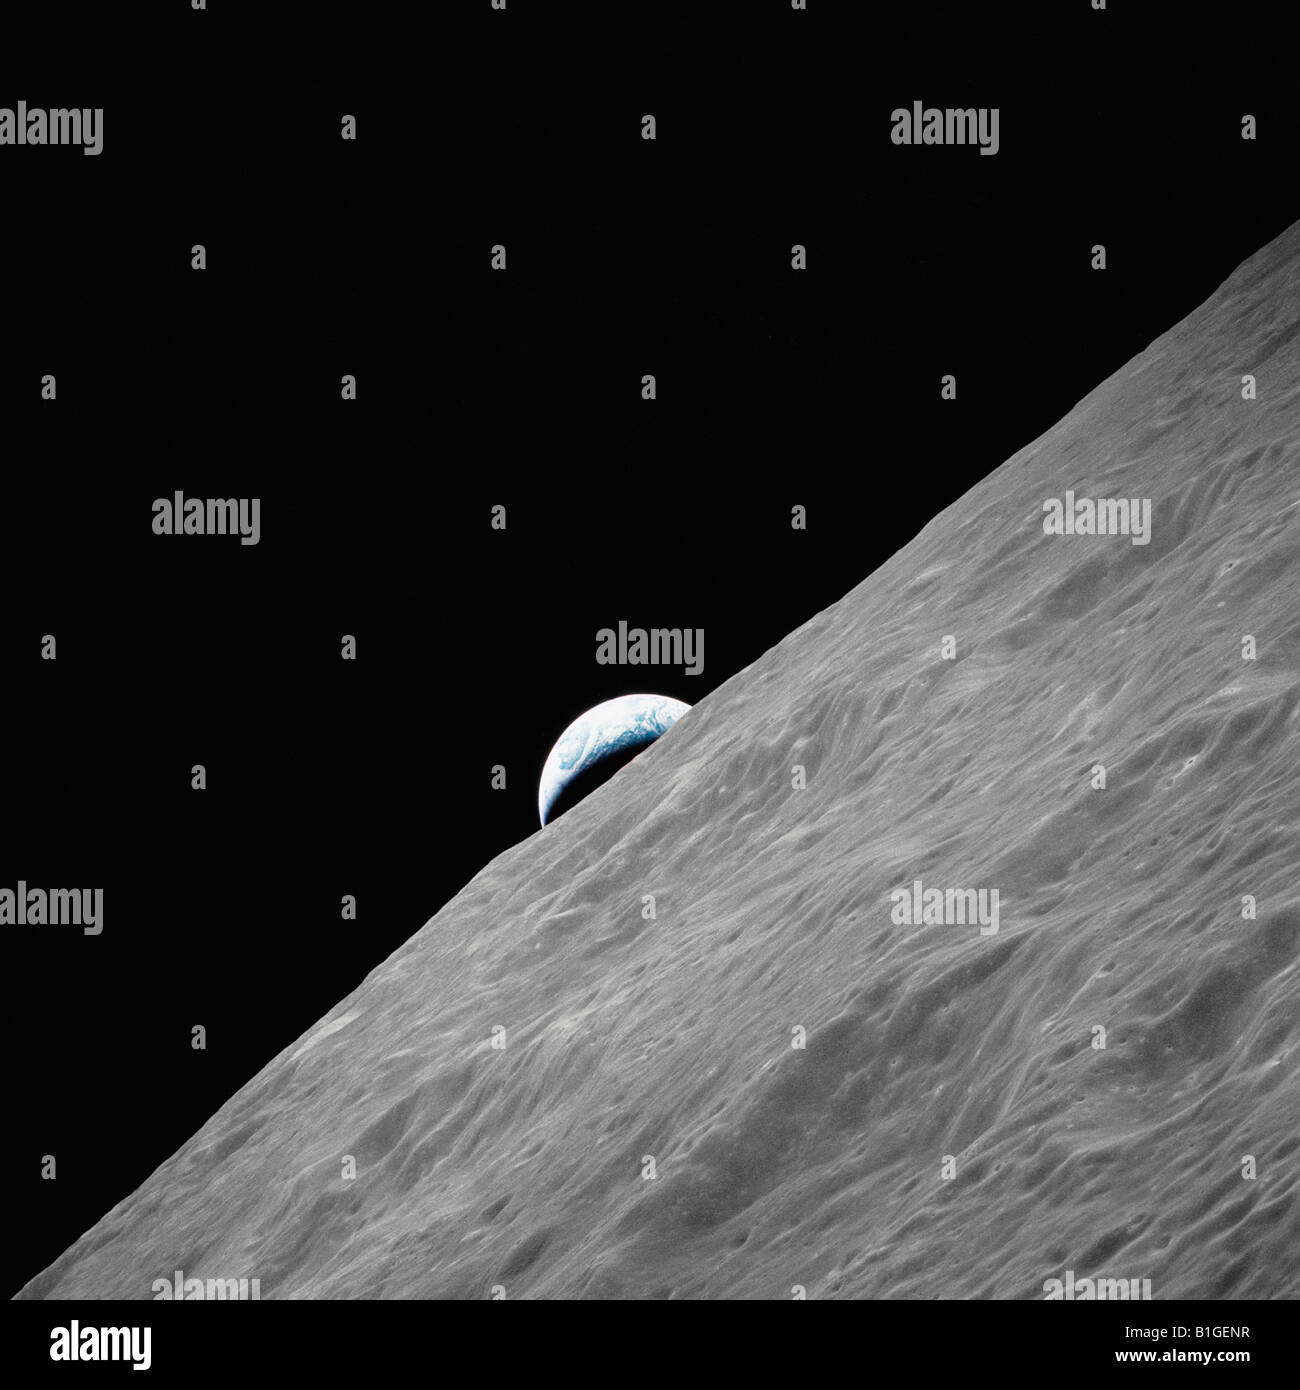 The crescent Earth rises above the lunar horizon - Stock Image